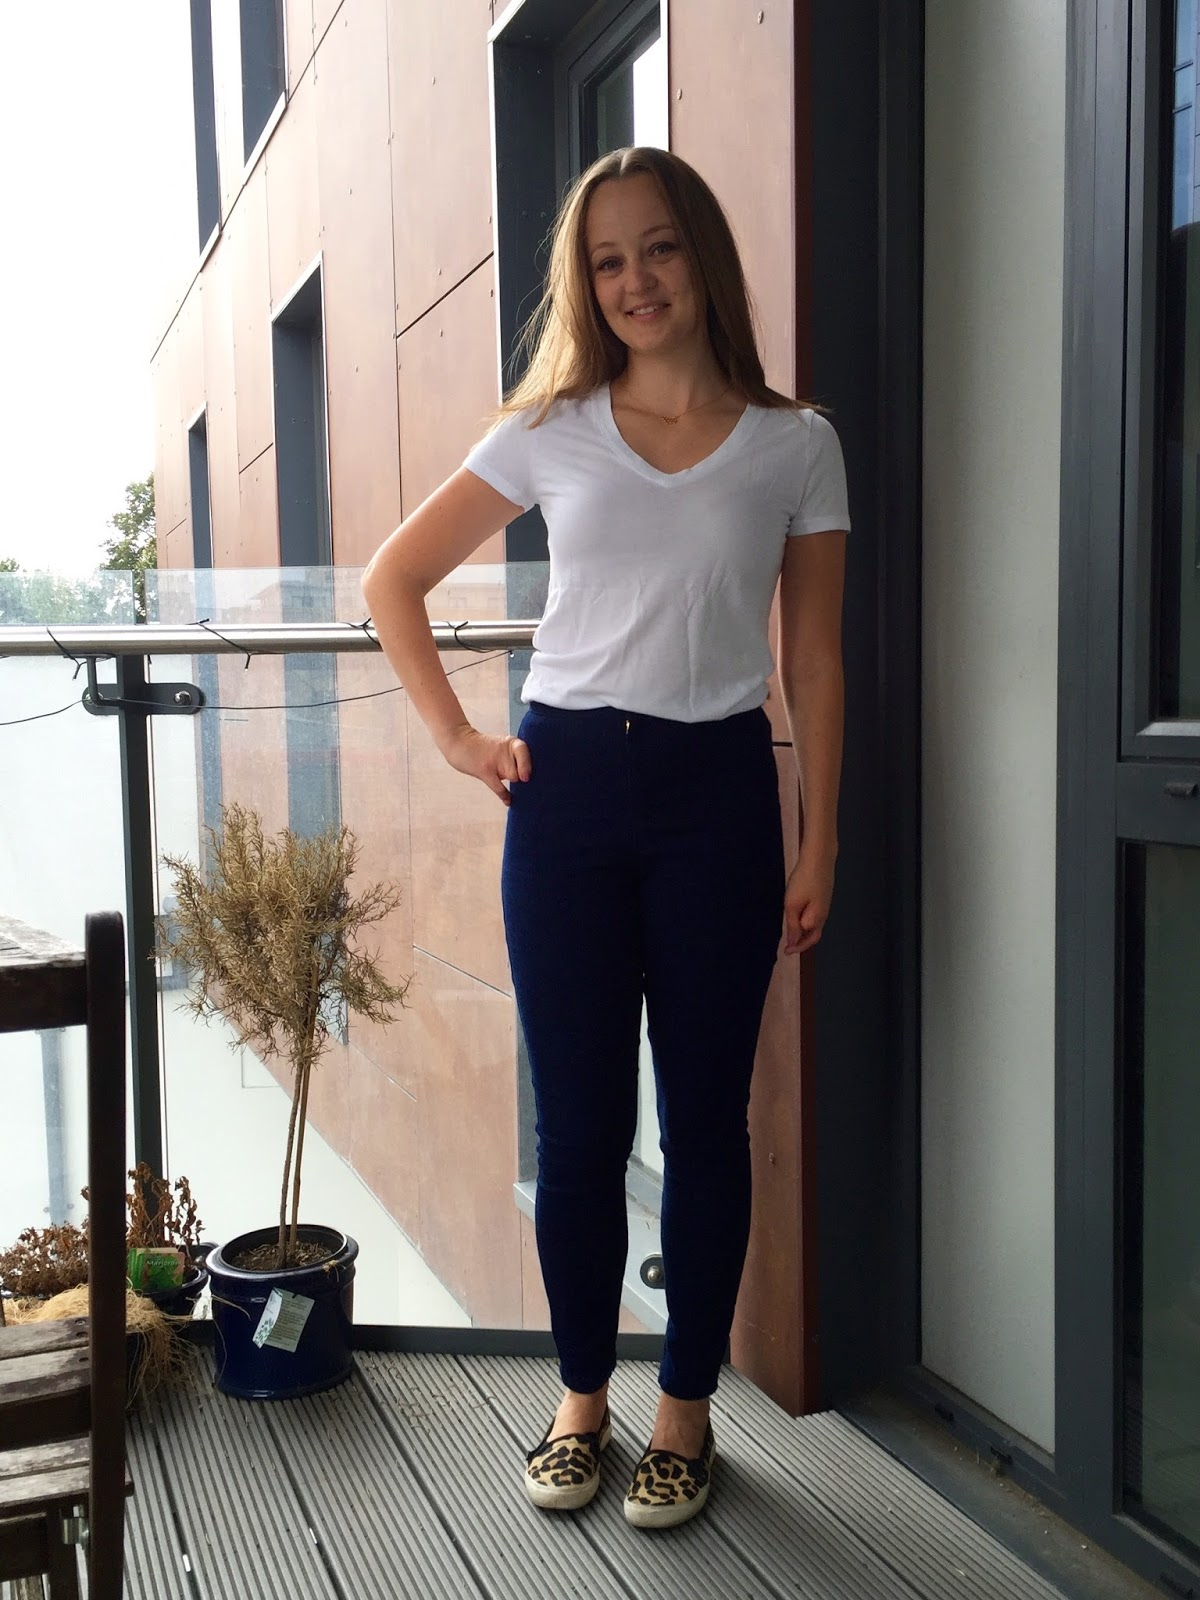 b4ff1220e67 The Mia Jeans are a classic pair of stretch skinny jeans. They re just the  style I like  high waist